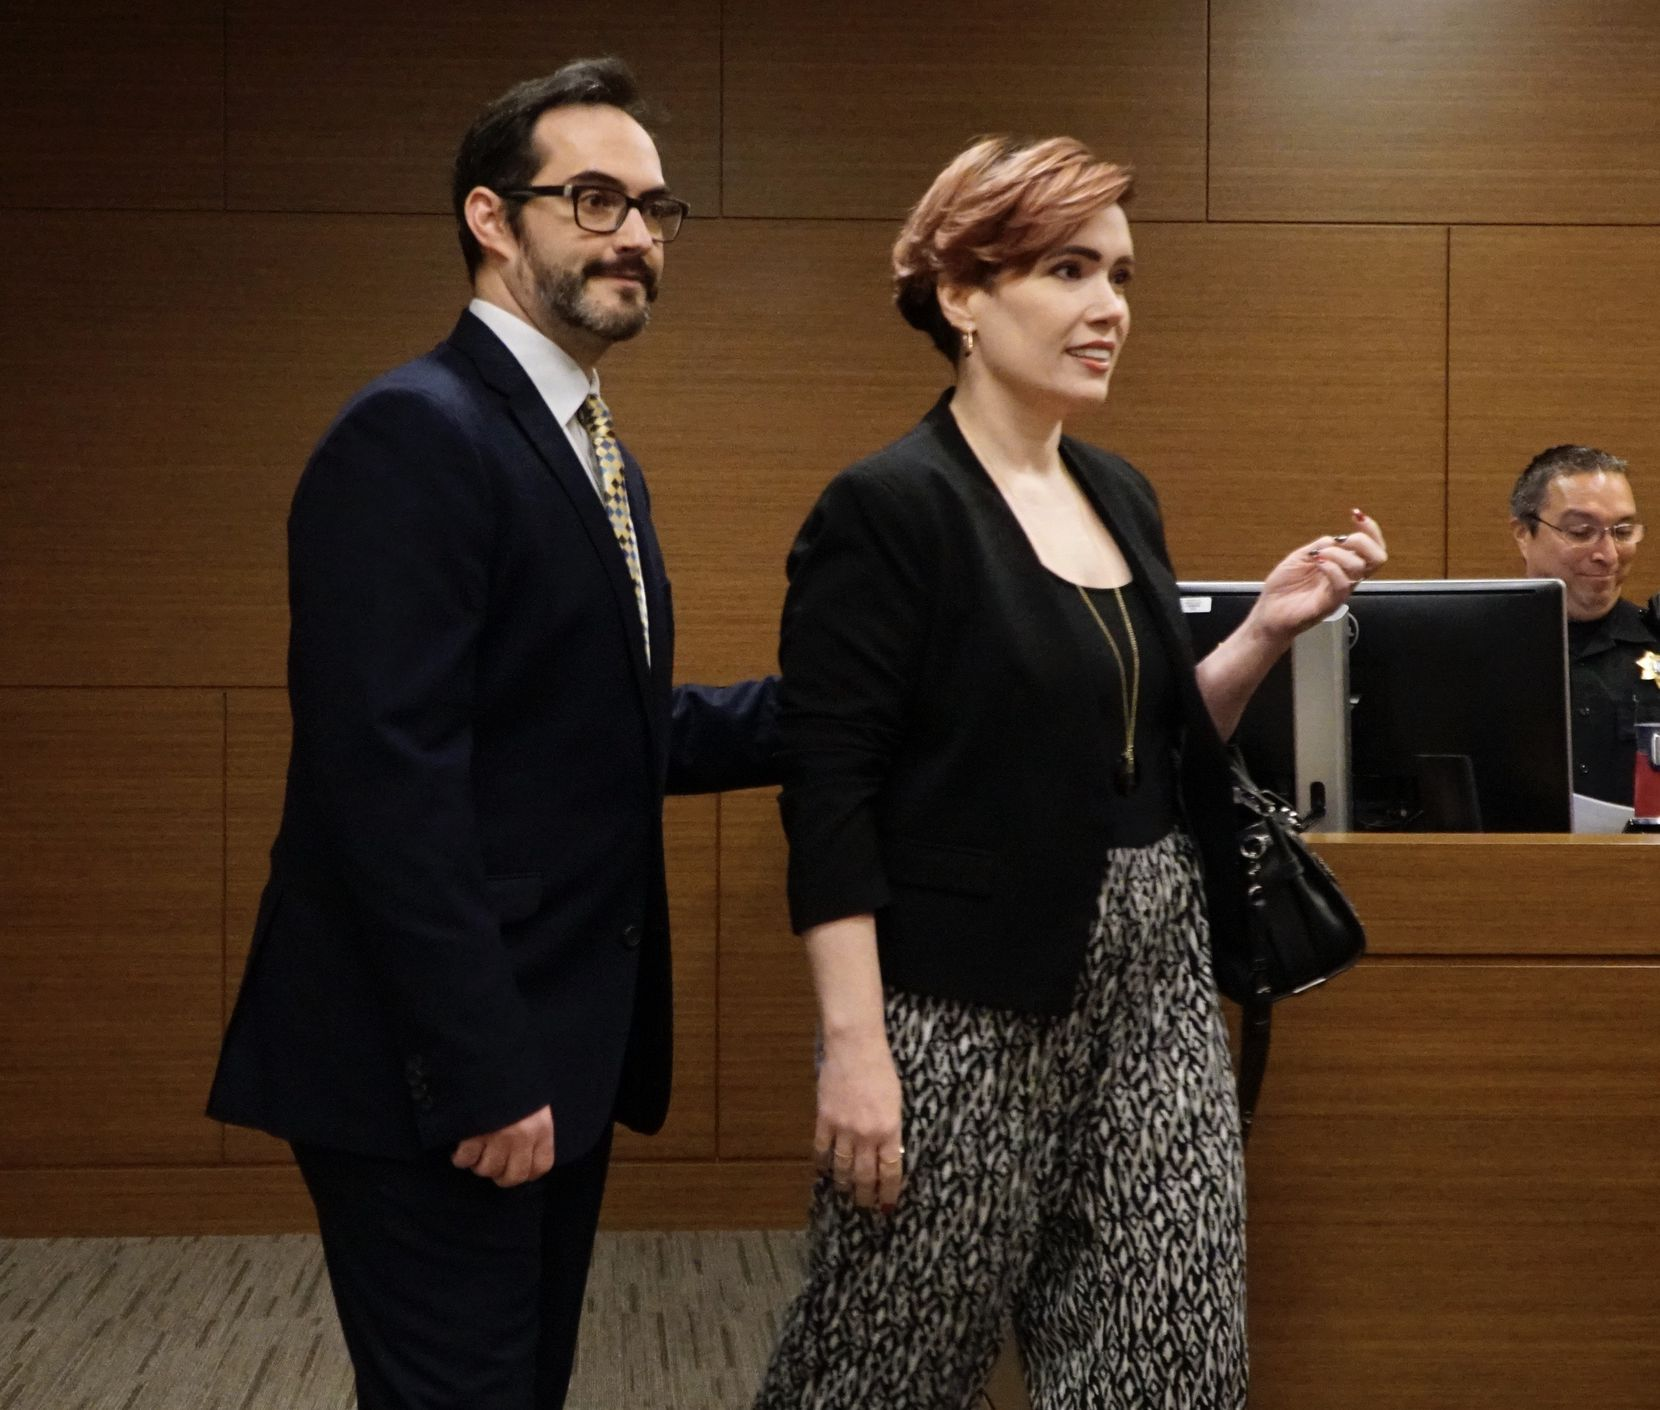 Ron Toye and Monica Rial, two of the four defendants whom anime voice actor Vic Mignogna filed a defamation lawsuit against were among those in the courtroom Thursday.